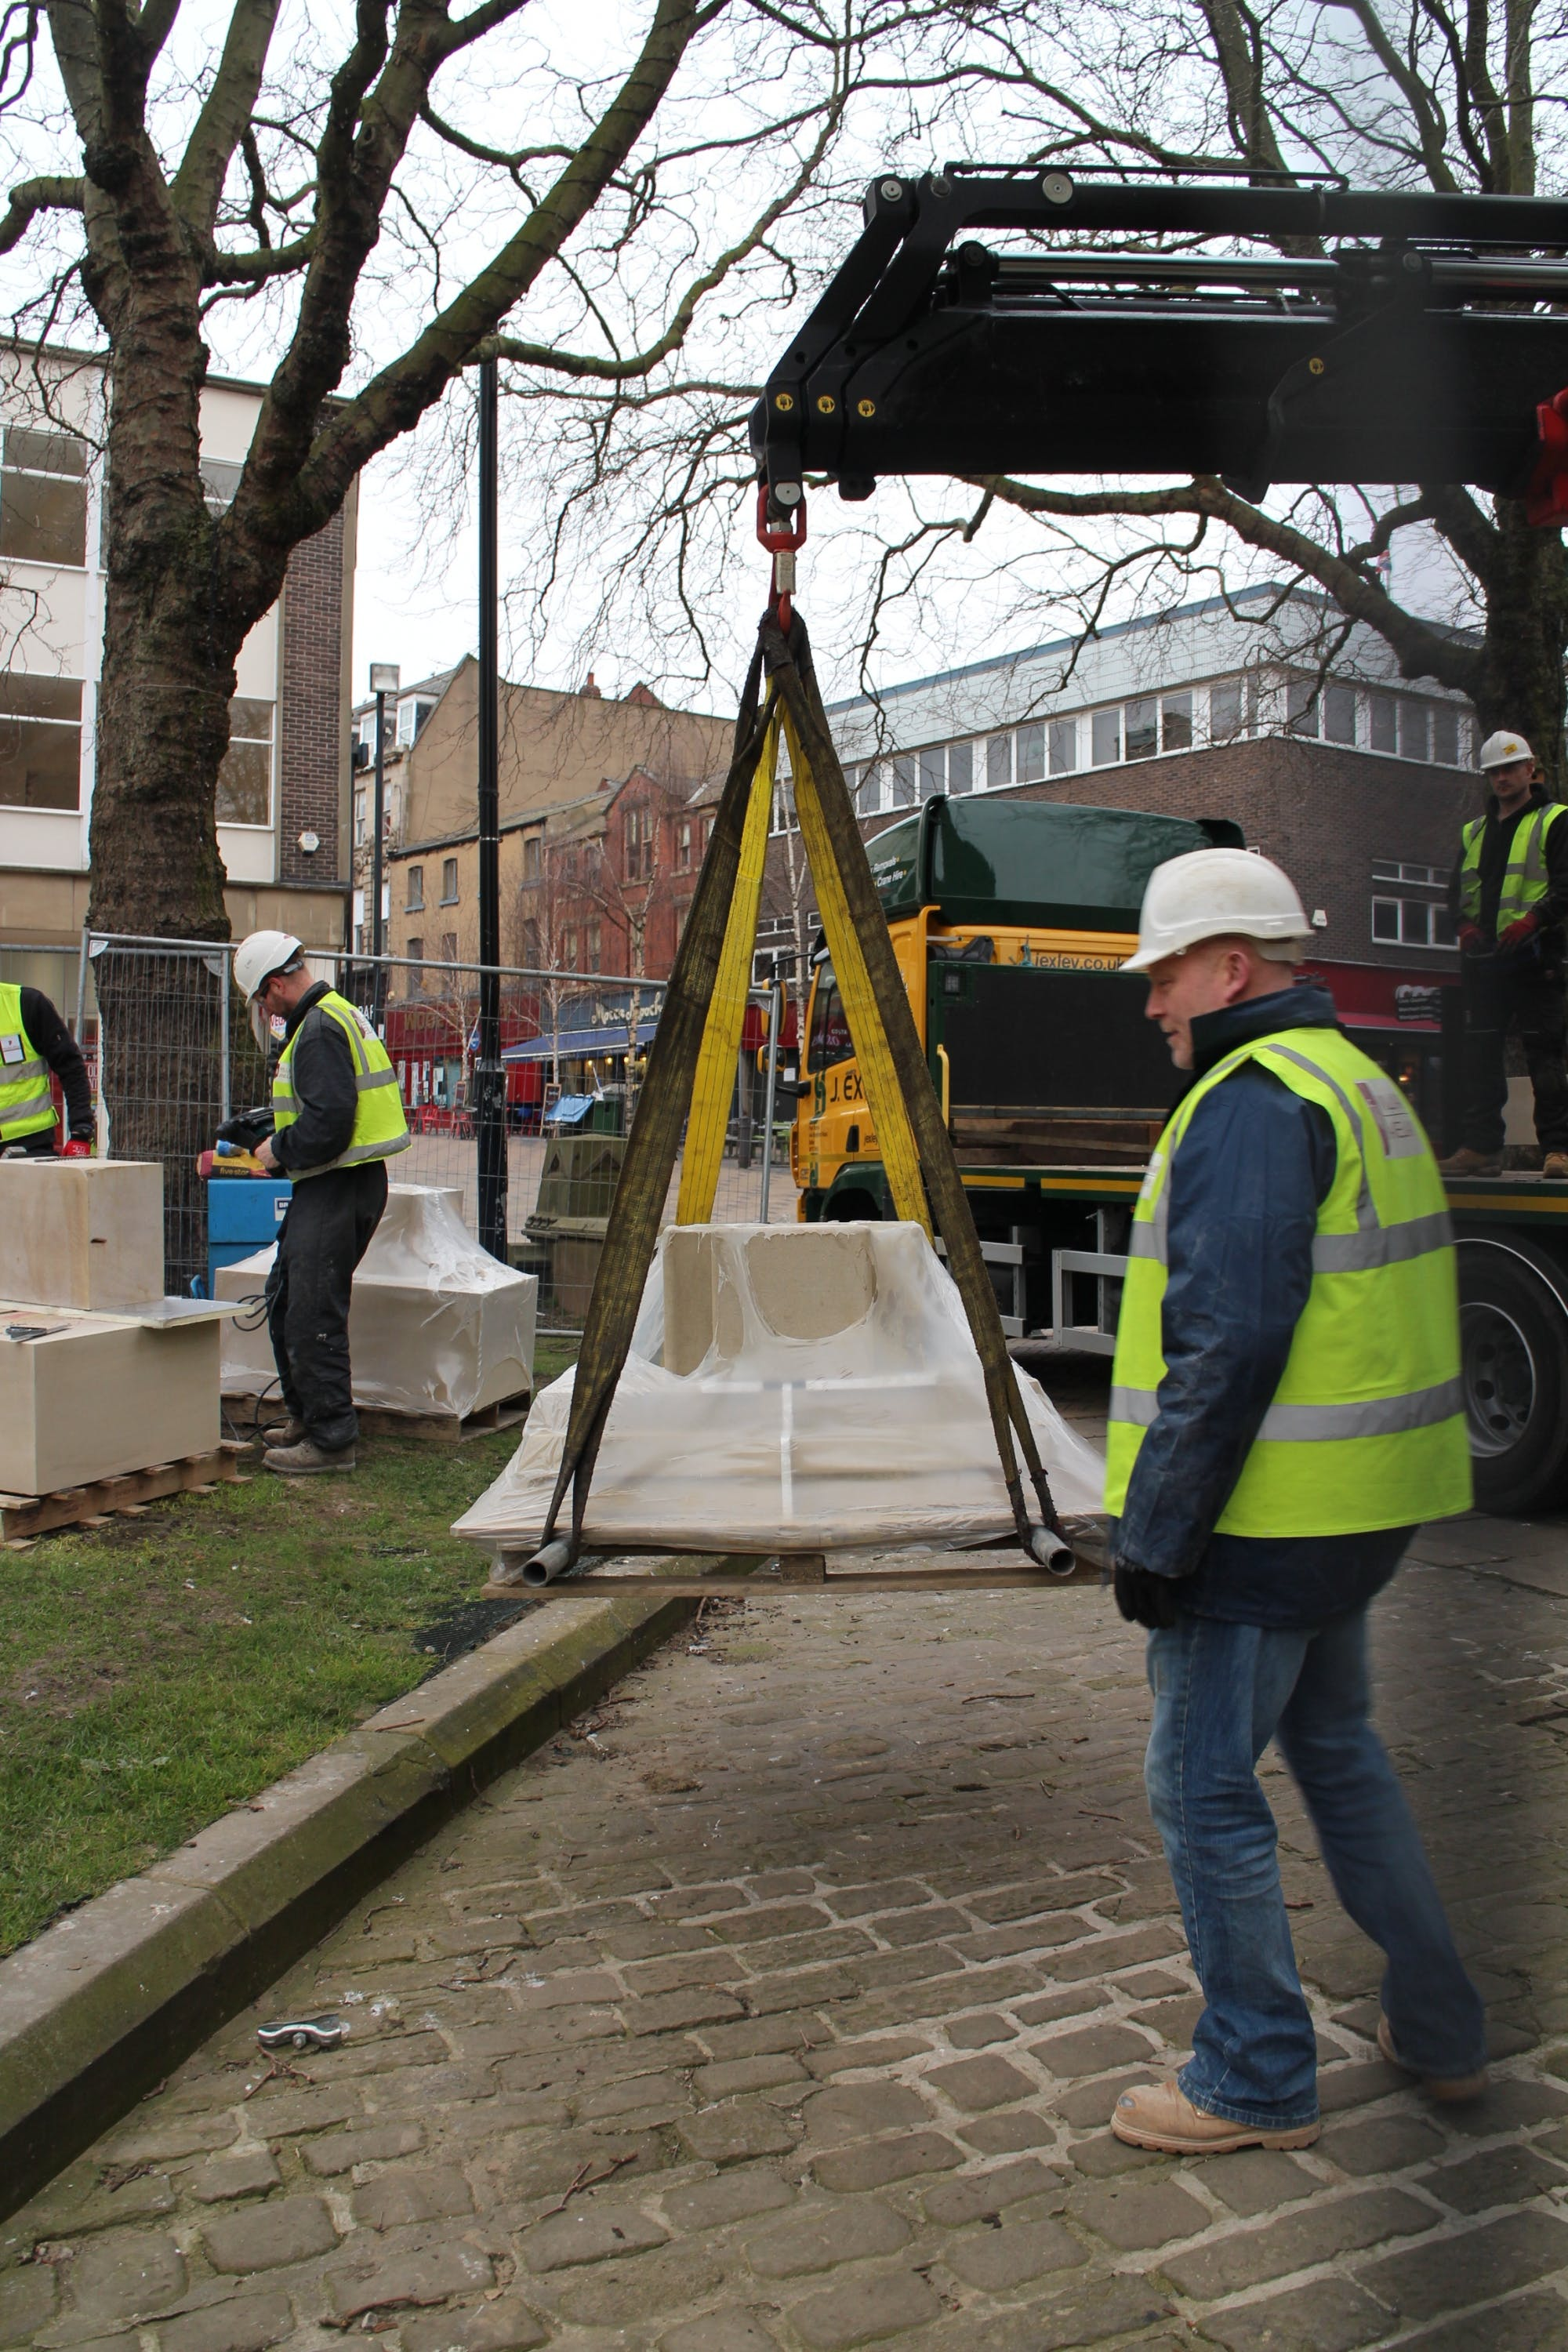 The crane sets to work lifting the base stones into place.